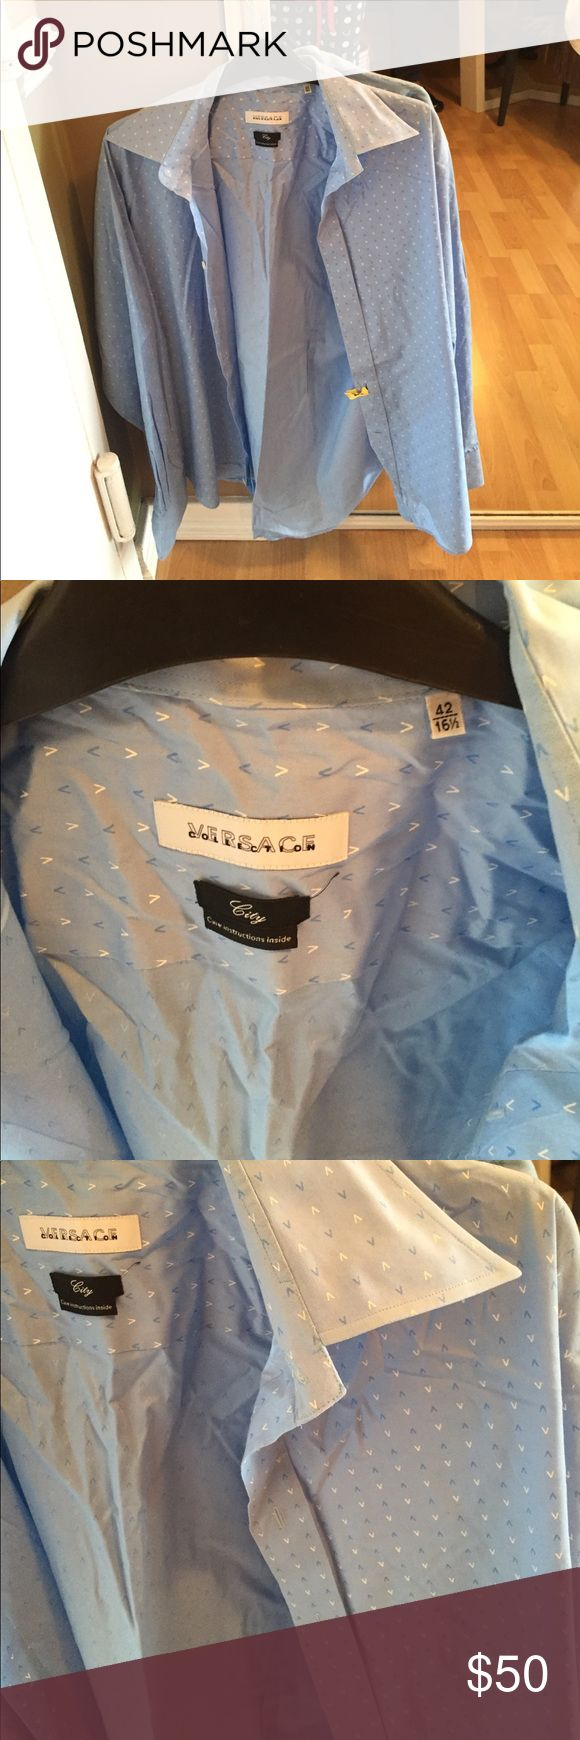 Versace great condition shirt Great condition Versace shirt Versace Shirts Casual Button Down Shirts